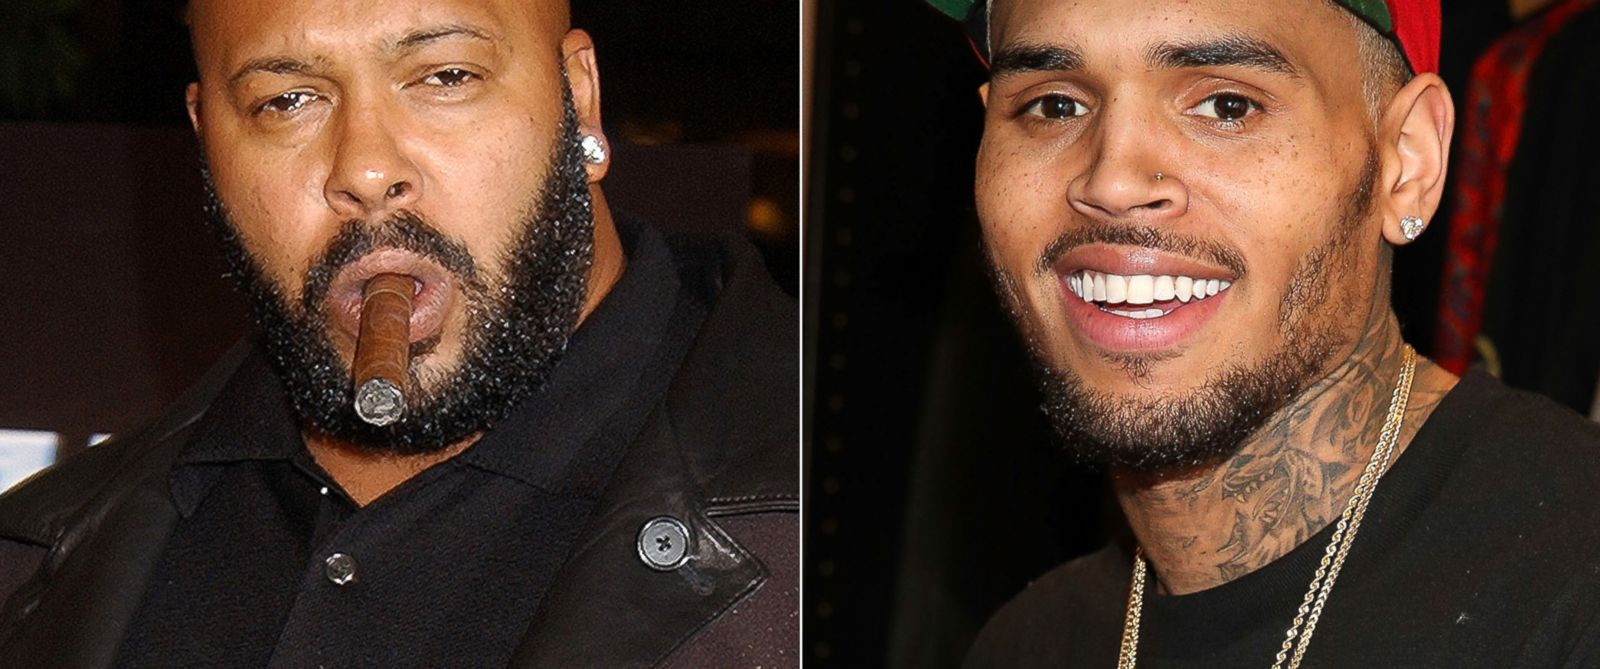 PHOTO: Marion Suge Knight seen on Nov. 7, 2002. | Chris Brown seen on Dec. 22, 2013.